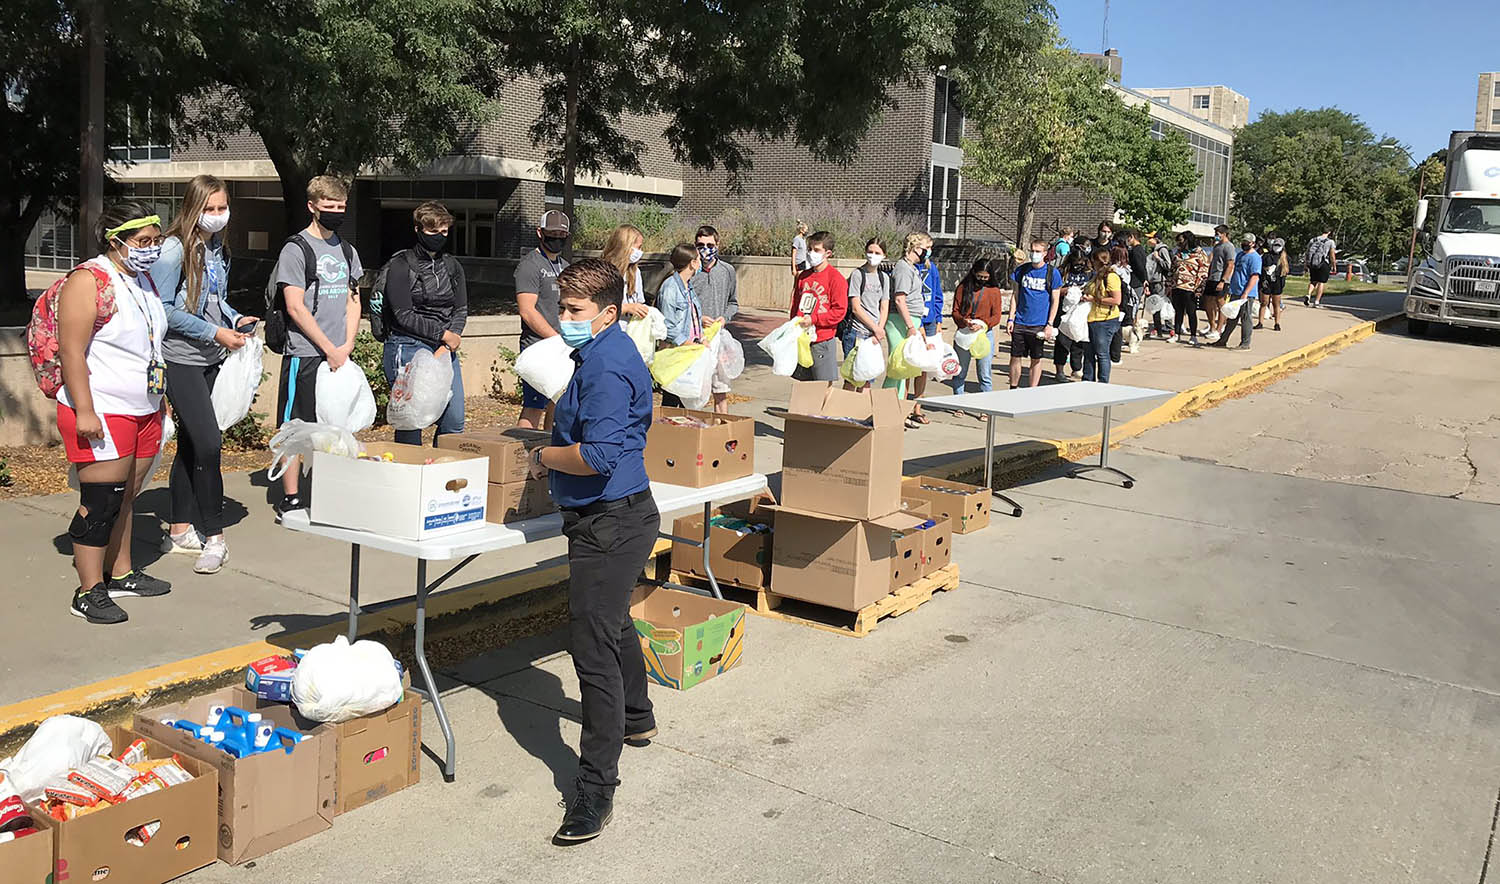 More than 340 students received fresh produce, dairy and meat Monday during a food giveaway on the UNK campus.